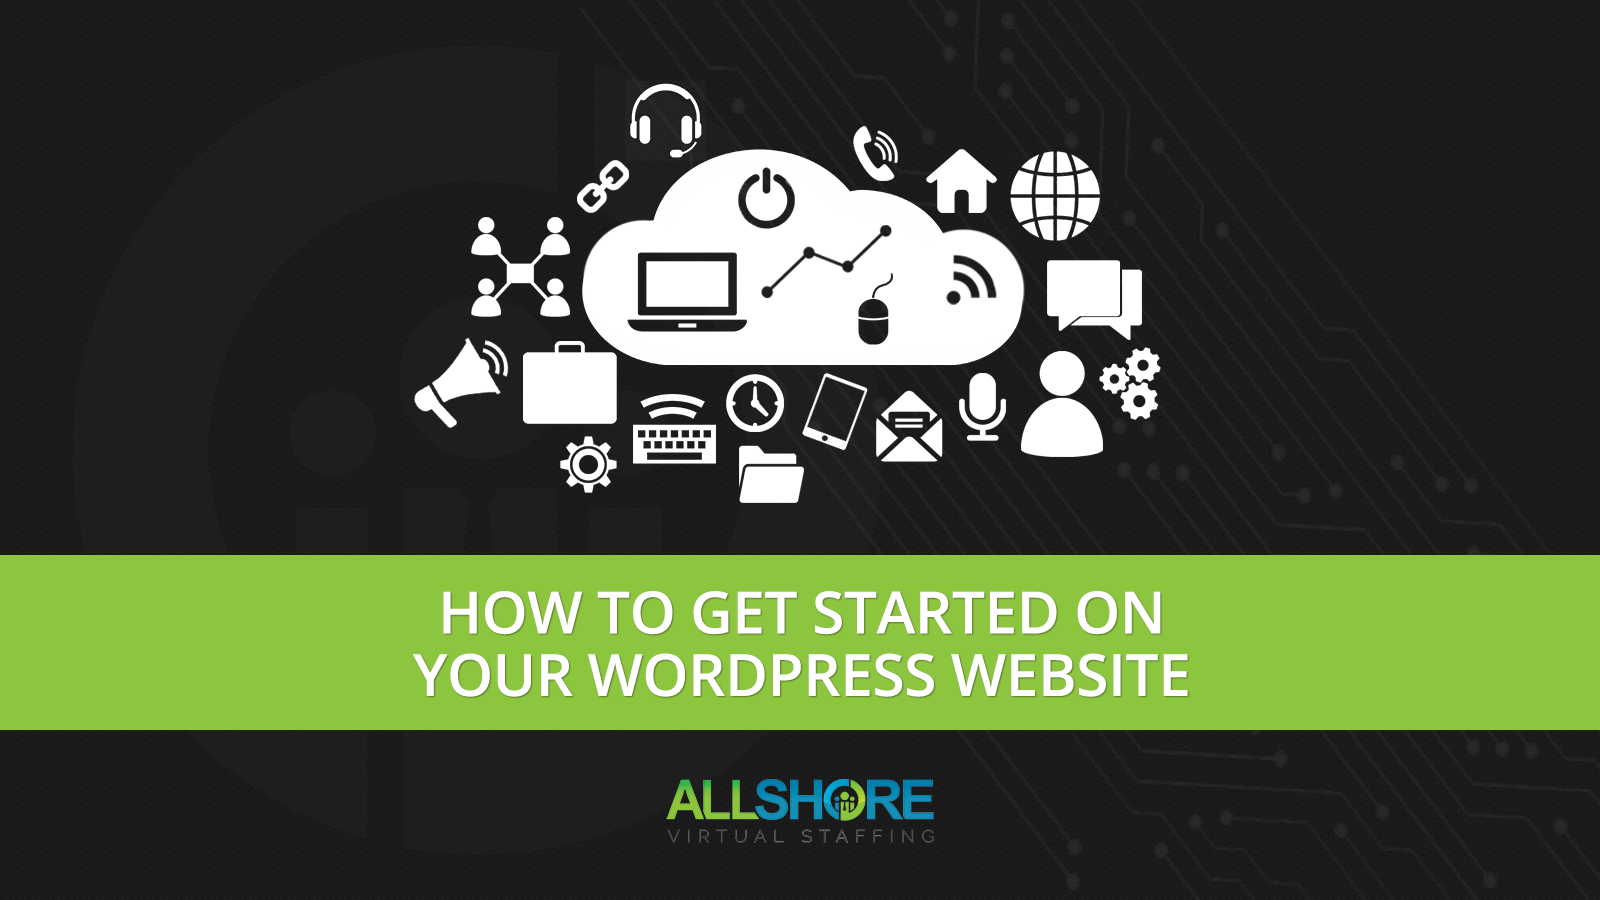 How to Get Started on Your WordPress Website